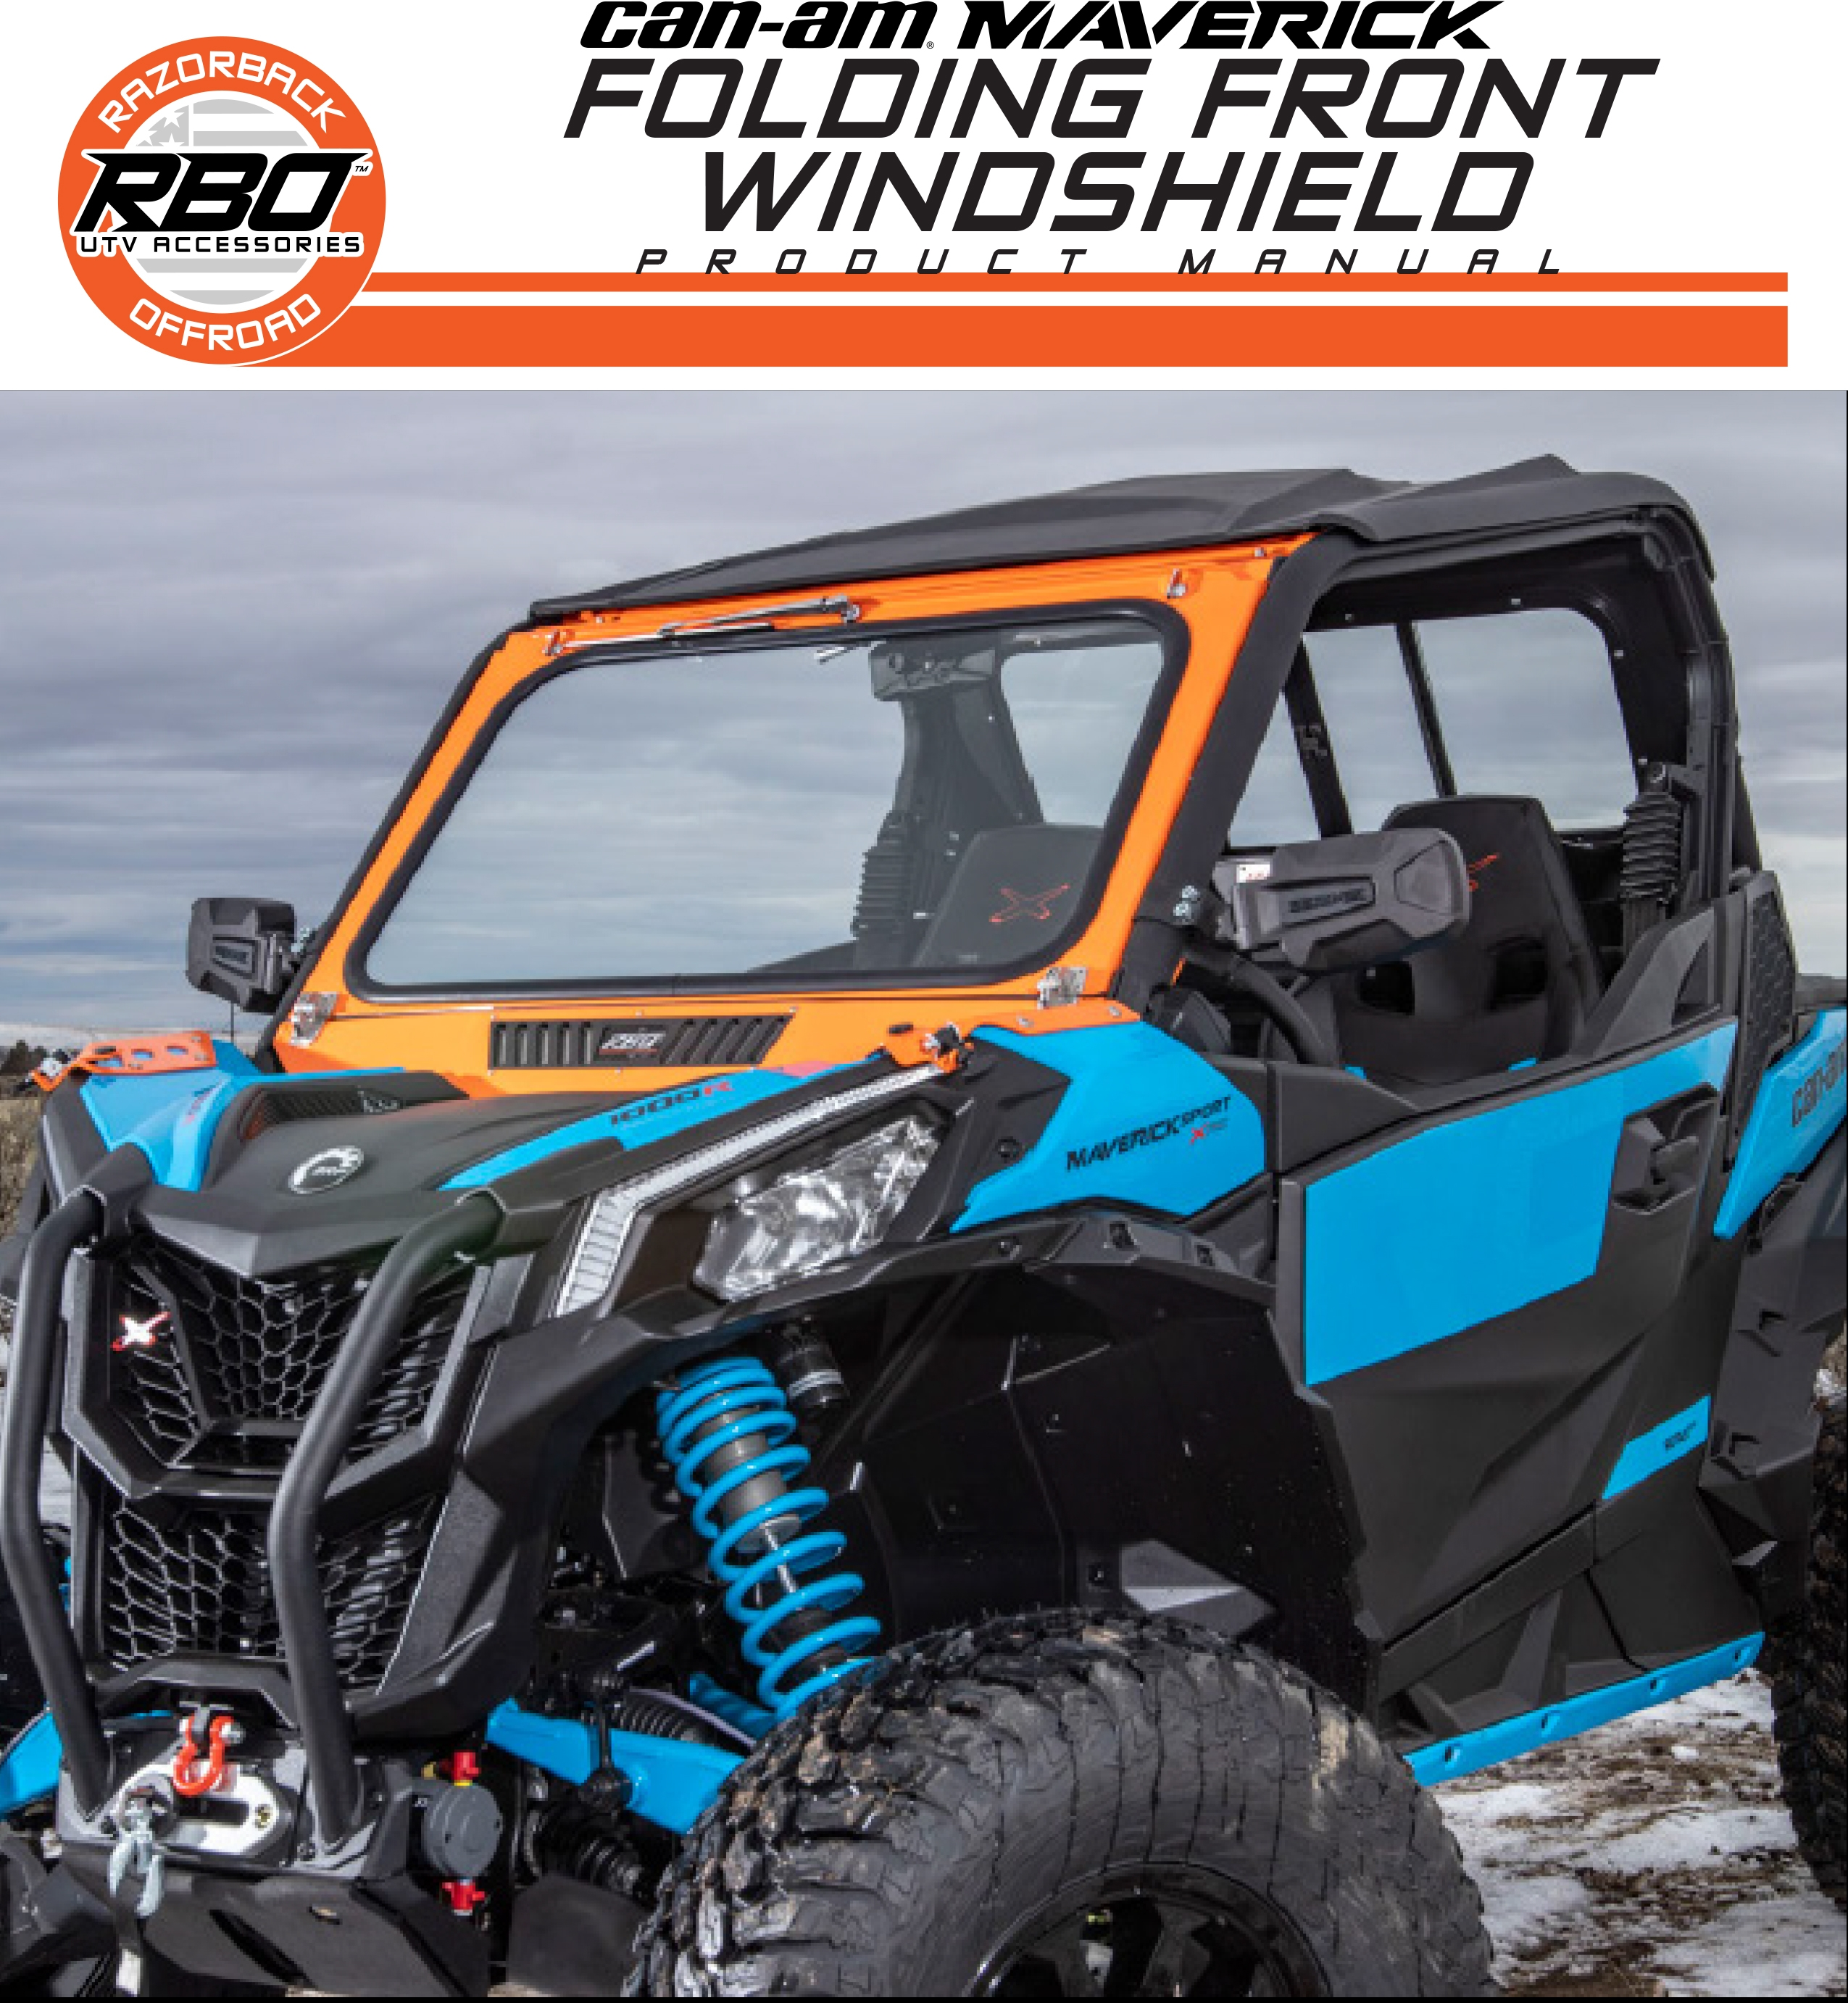 RBO Can-Am Maverick Front Folding Windshield Product Manual